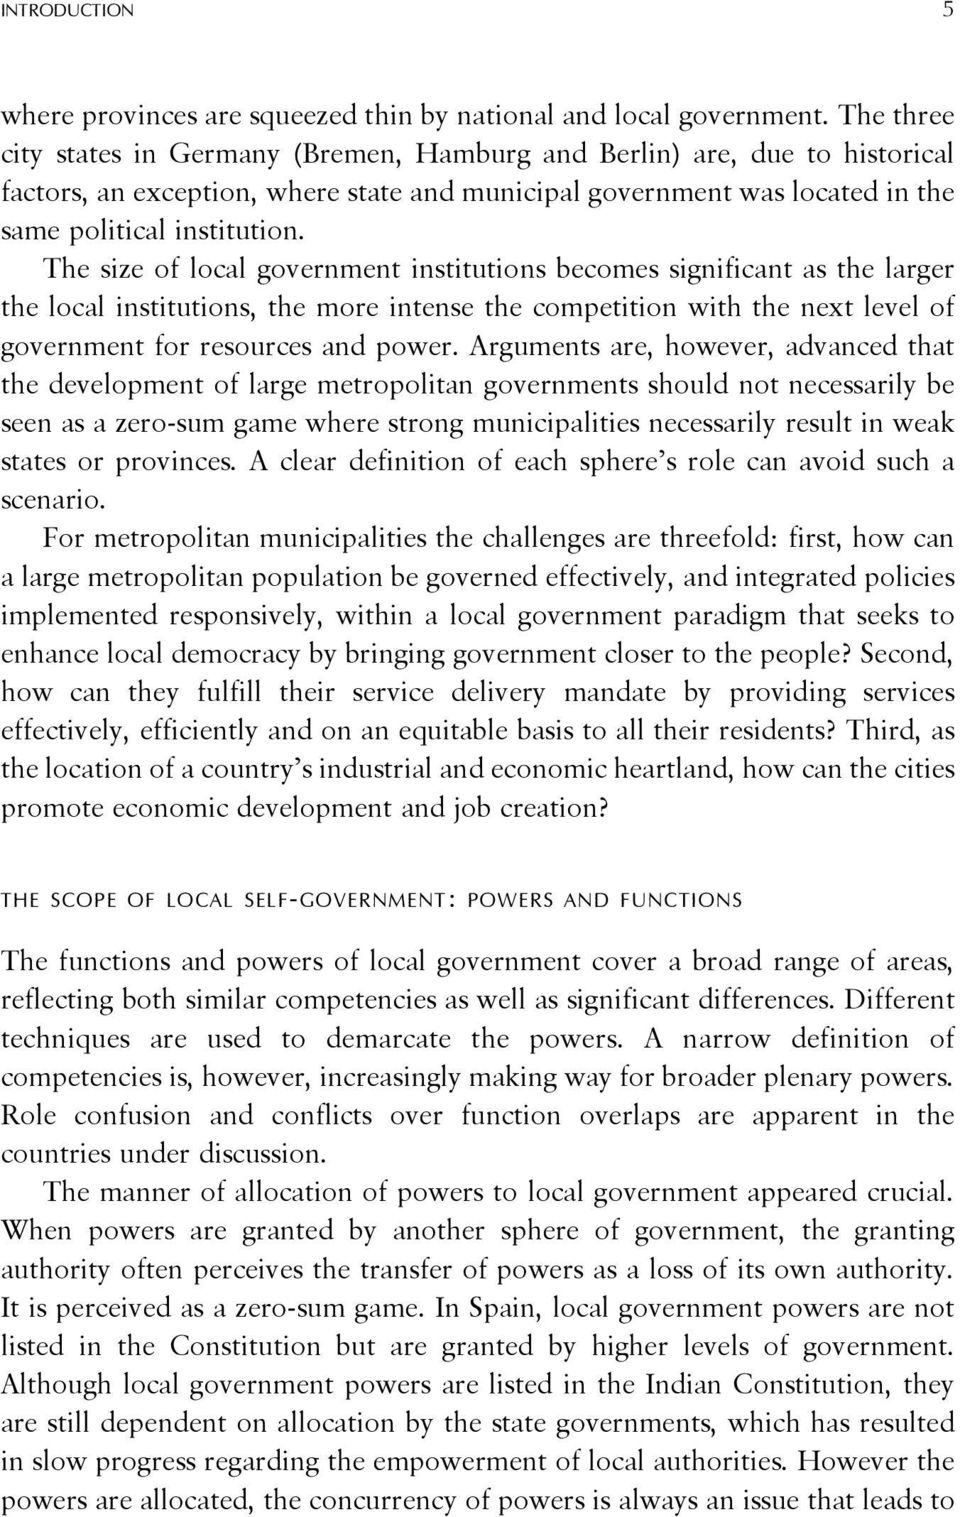 The size of local government institutions becomes significant as the larger the local institutions, the more intense the competition with the next level of government for resources and power.